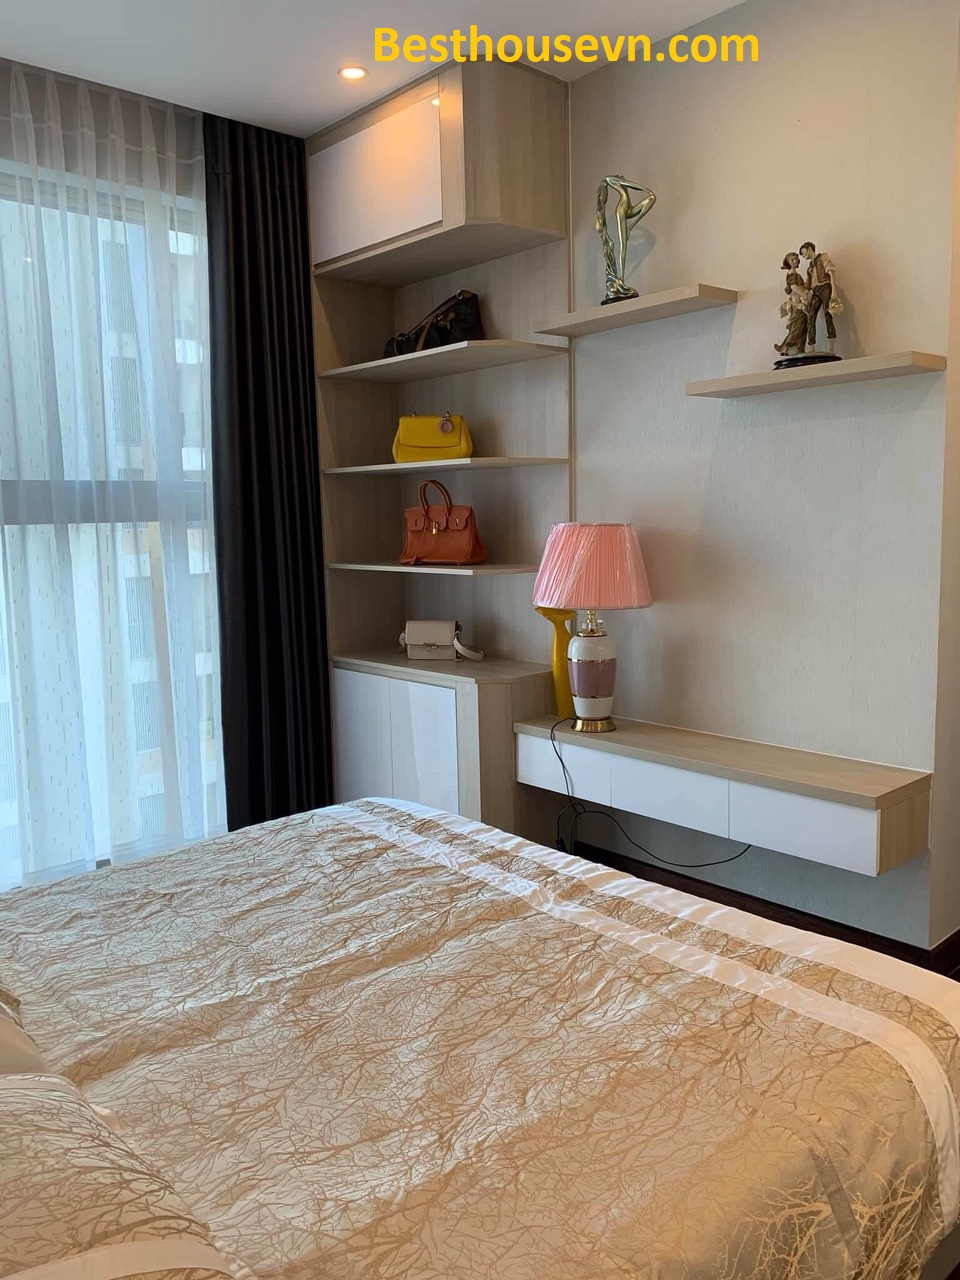 Mitown-89sqm-apartment-for-rent-in-phu-my-hung-district-7-hcmc-vn